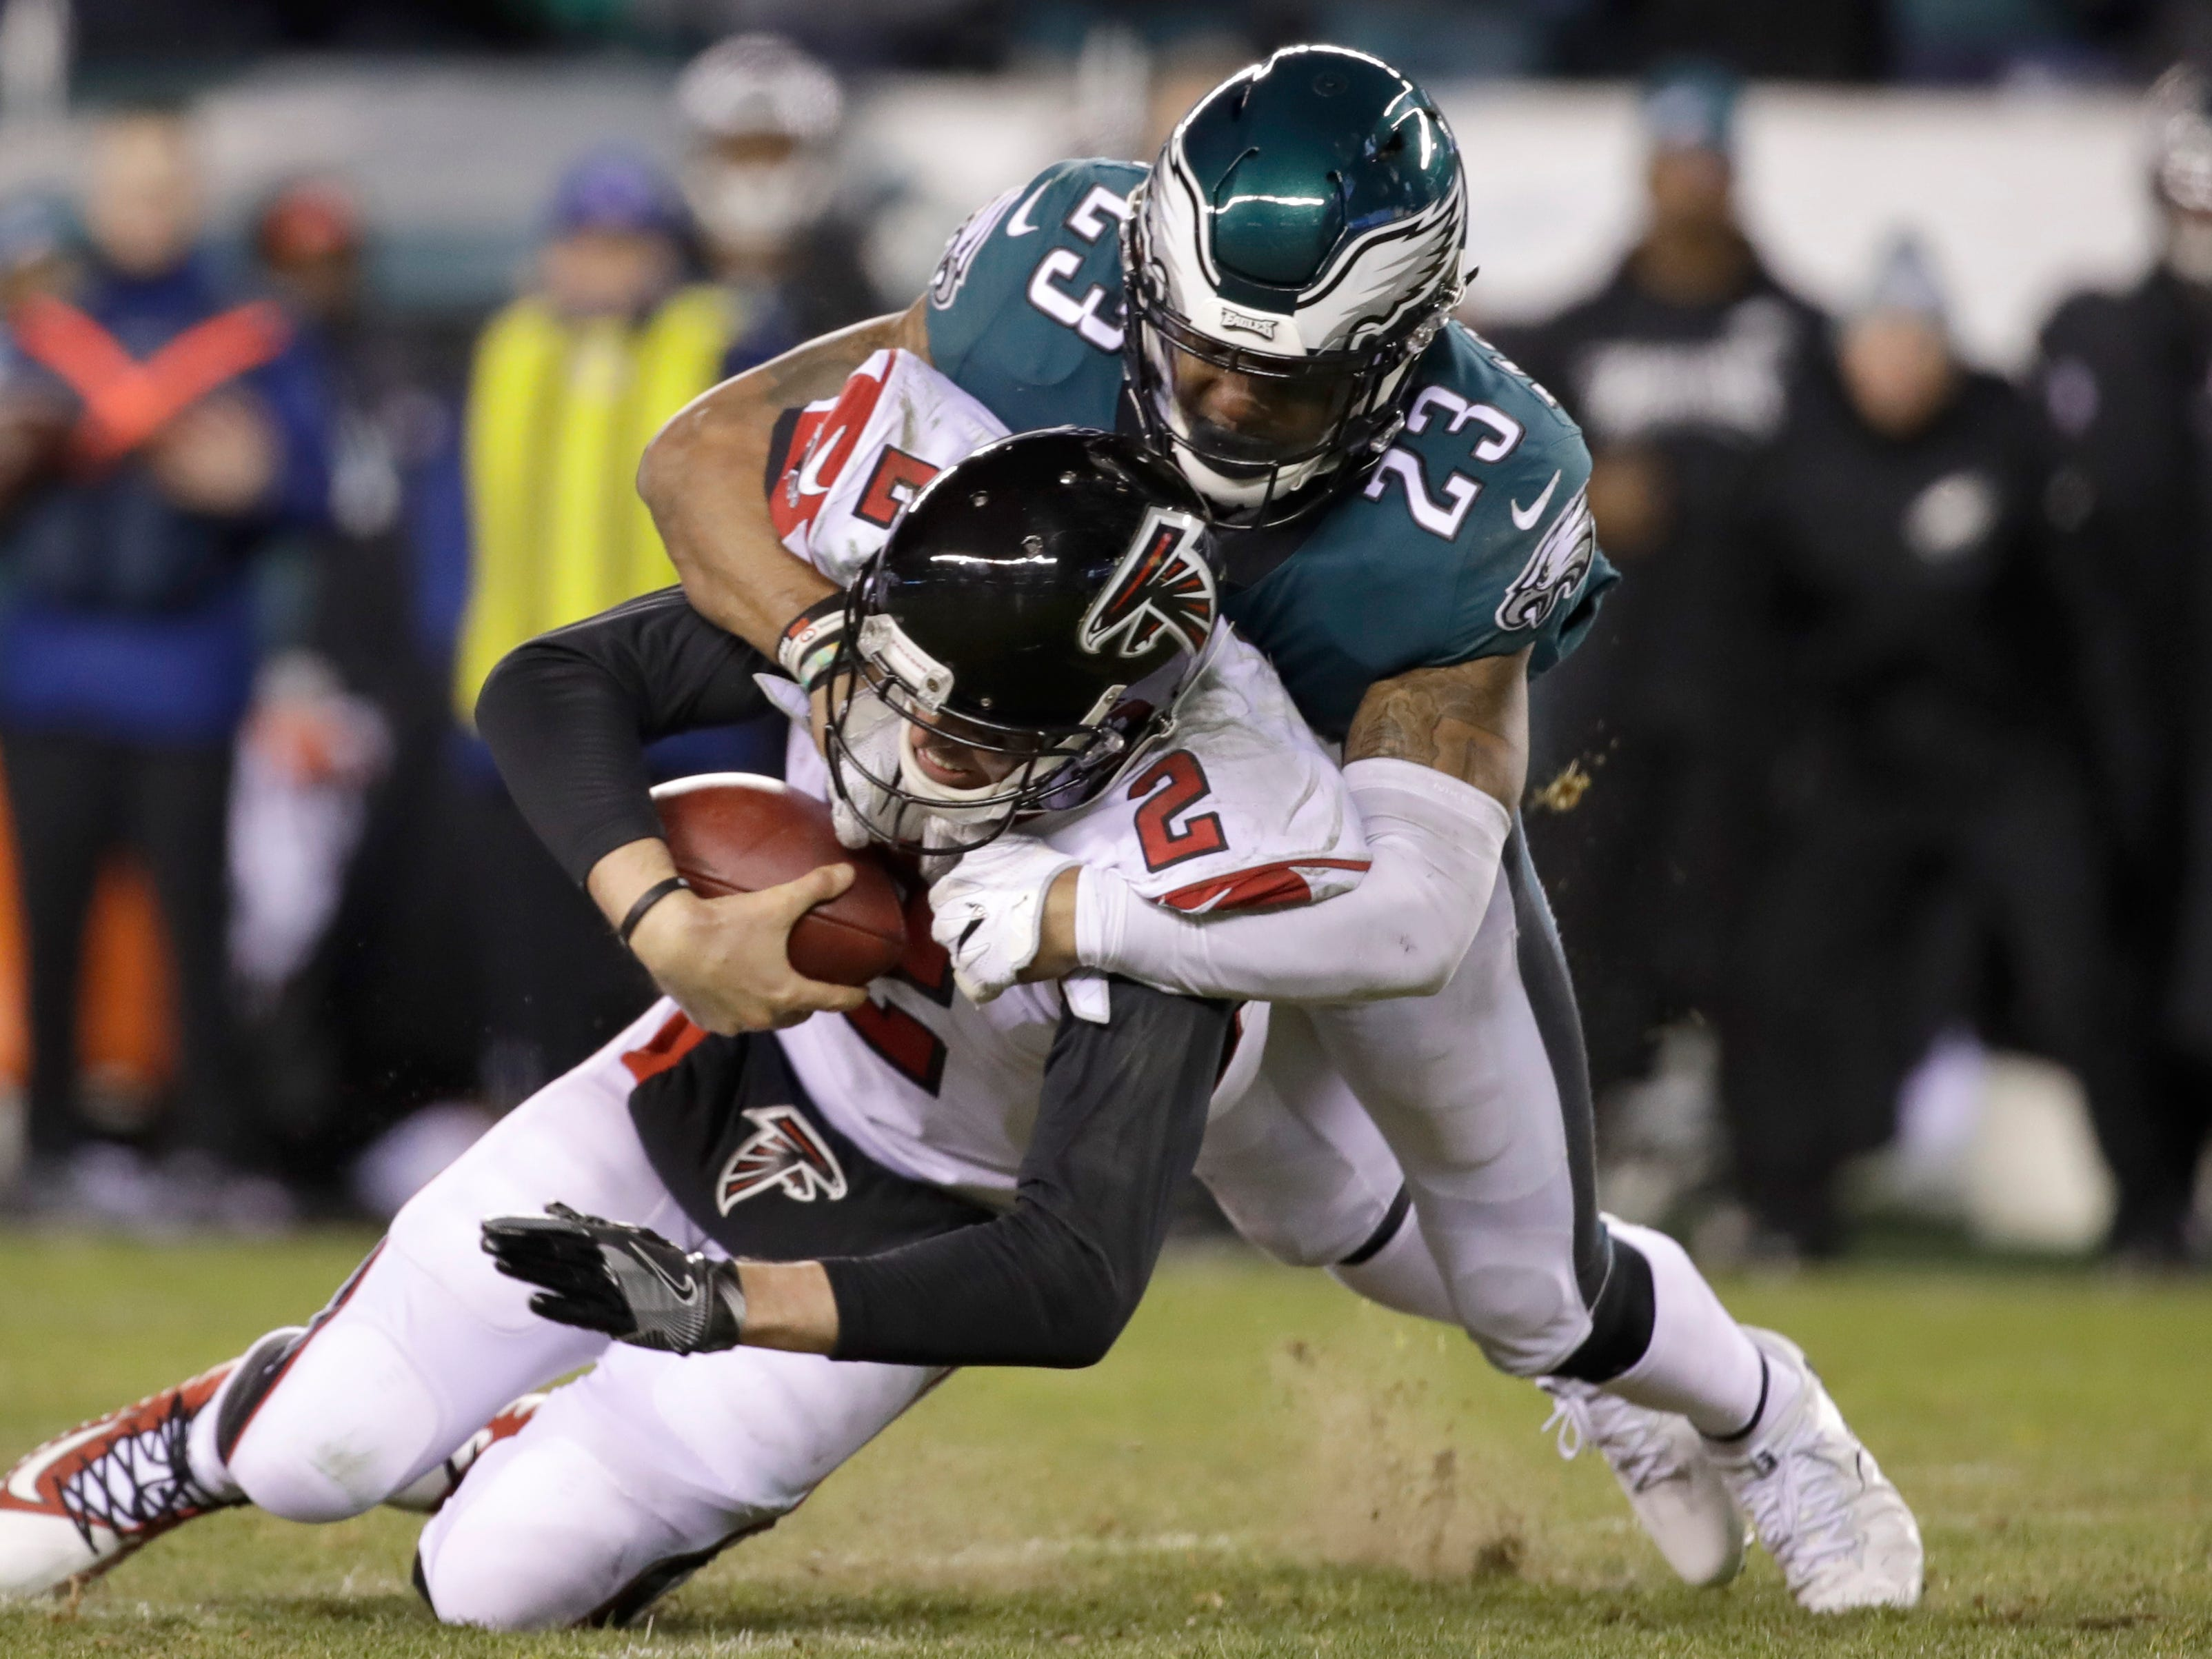 8. Atlanta Falcons at Philadelphia Eagles, Week 1, 8:20 p.m. Sept. 6, NBC: Including the first game of the season is a must, especially since it involves the defending champs. The Eagles are banged up, but can QB Nick Foles reprise his Super Bowl MVP performance?